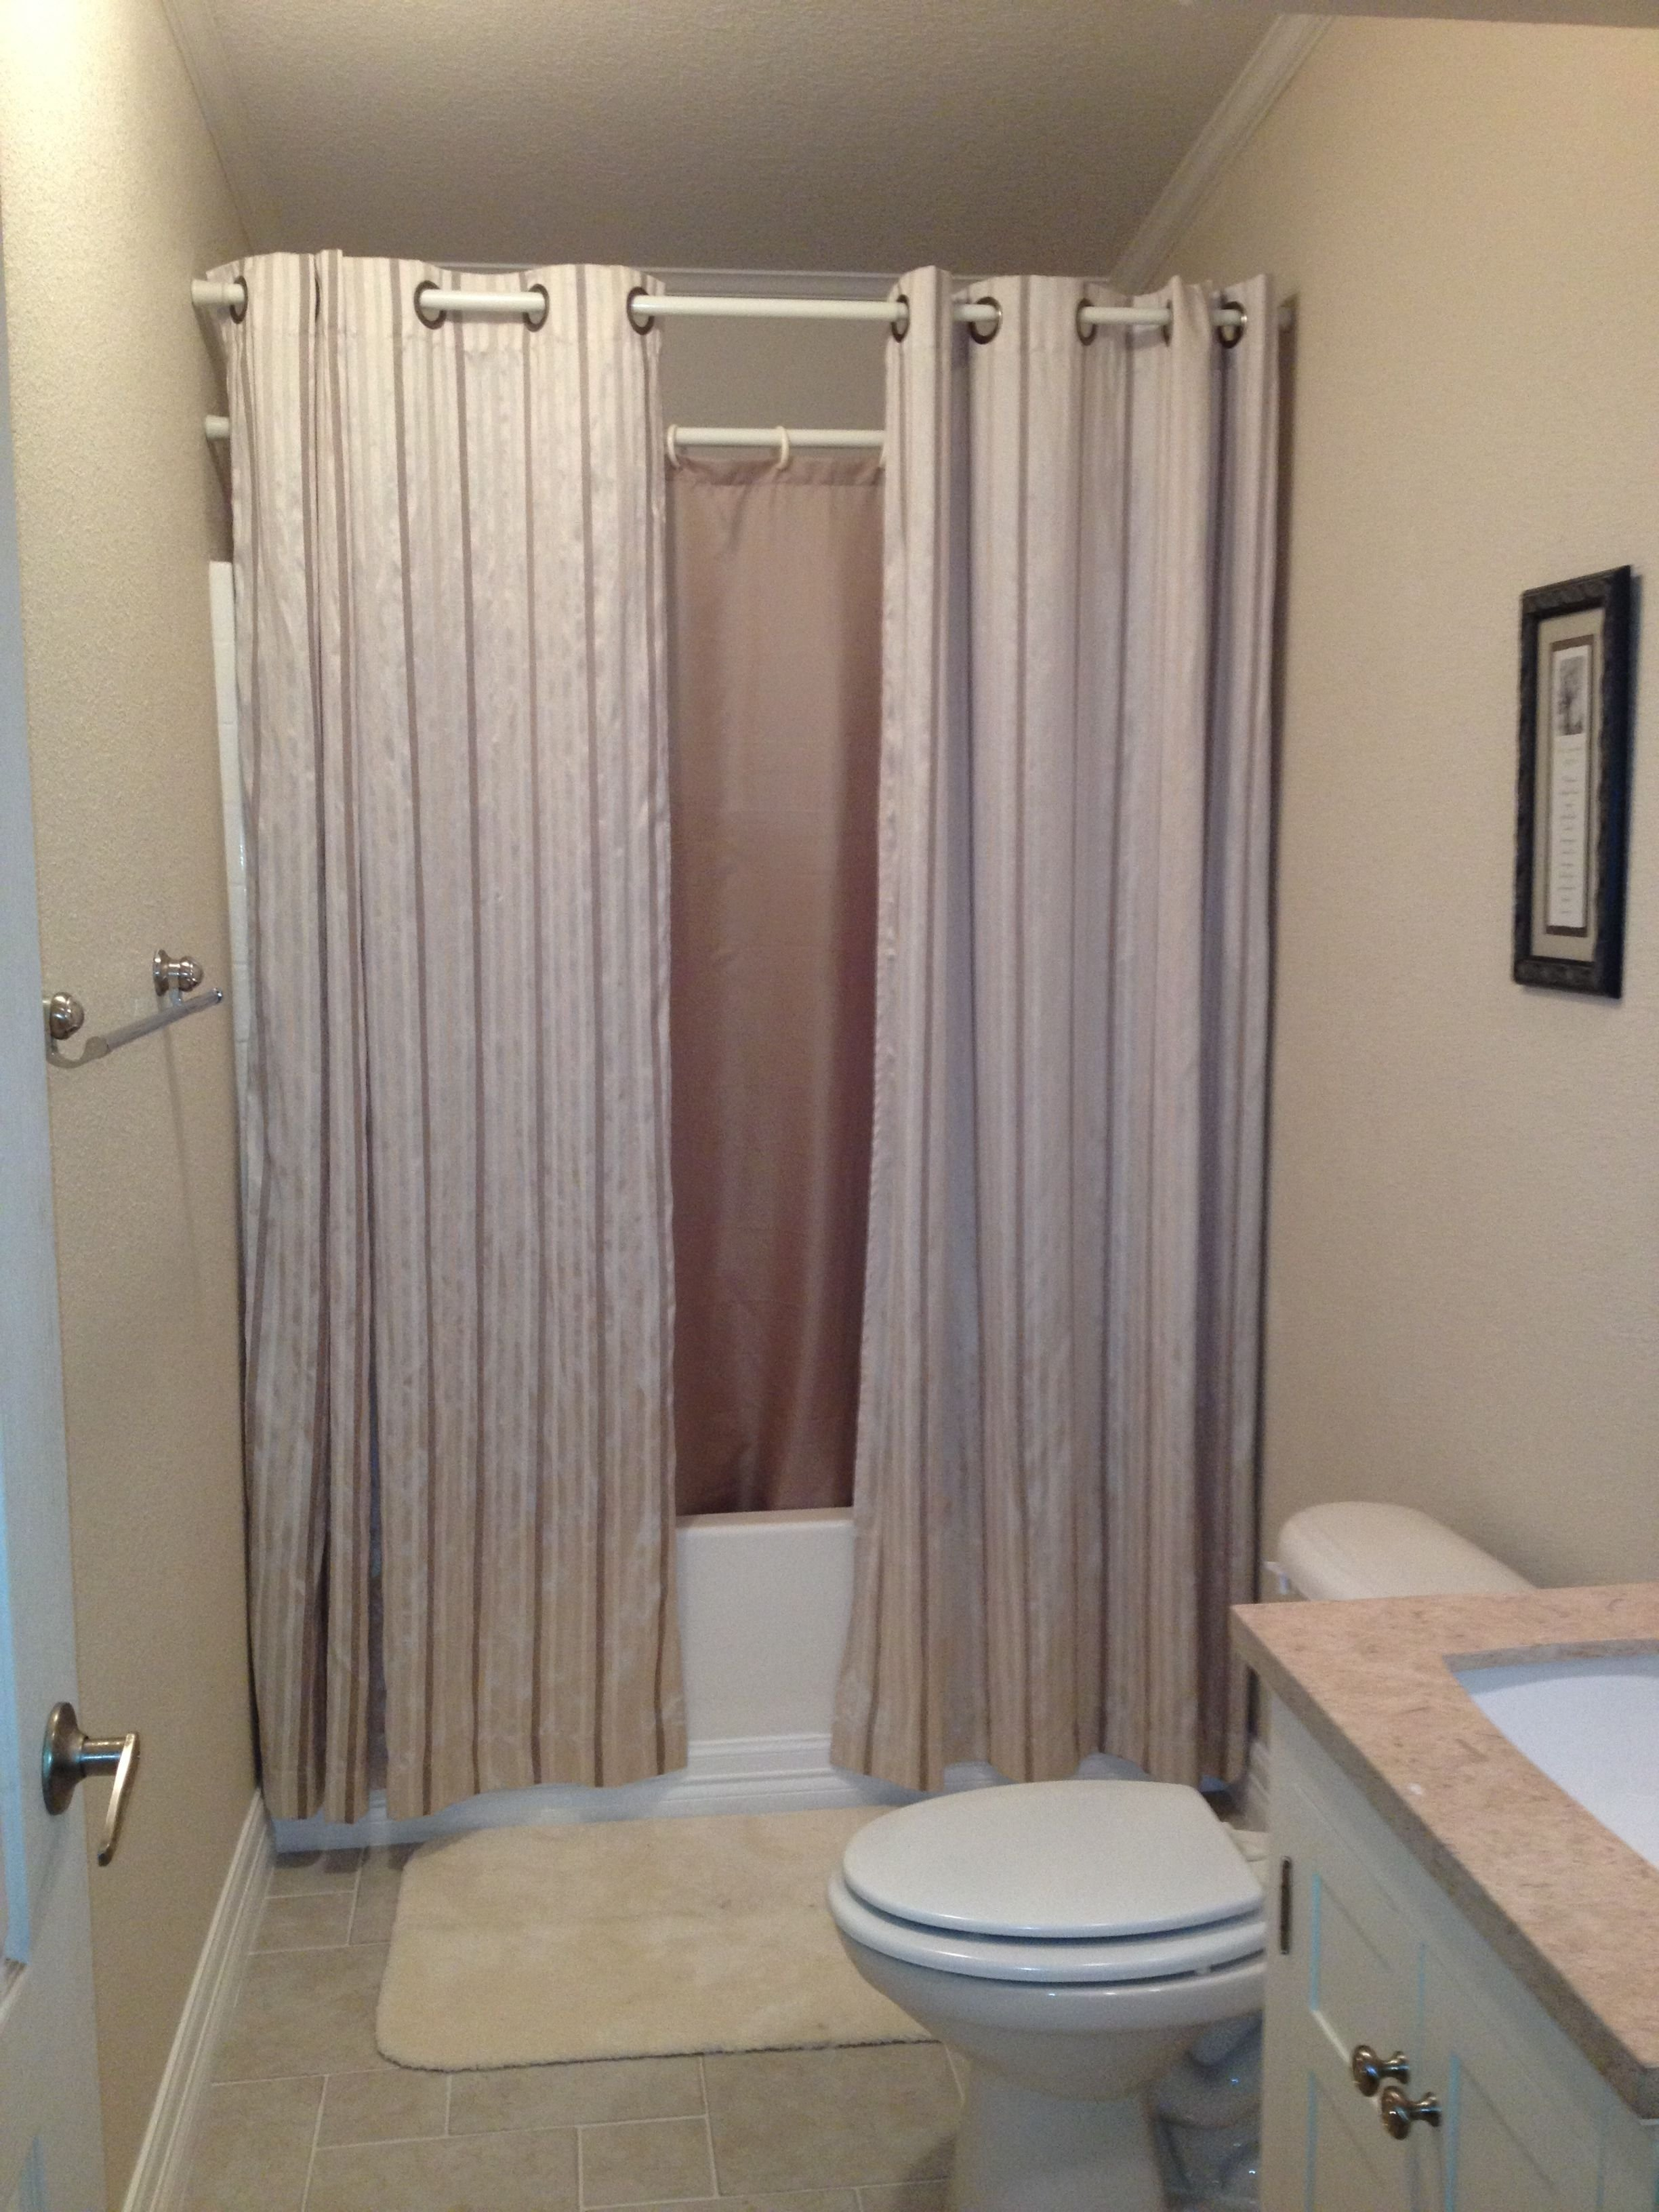 10 Trendy Shower Curtain Ideas For Small Bathrooms hanging shower curtains to make small bathroom look bigger